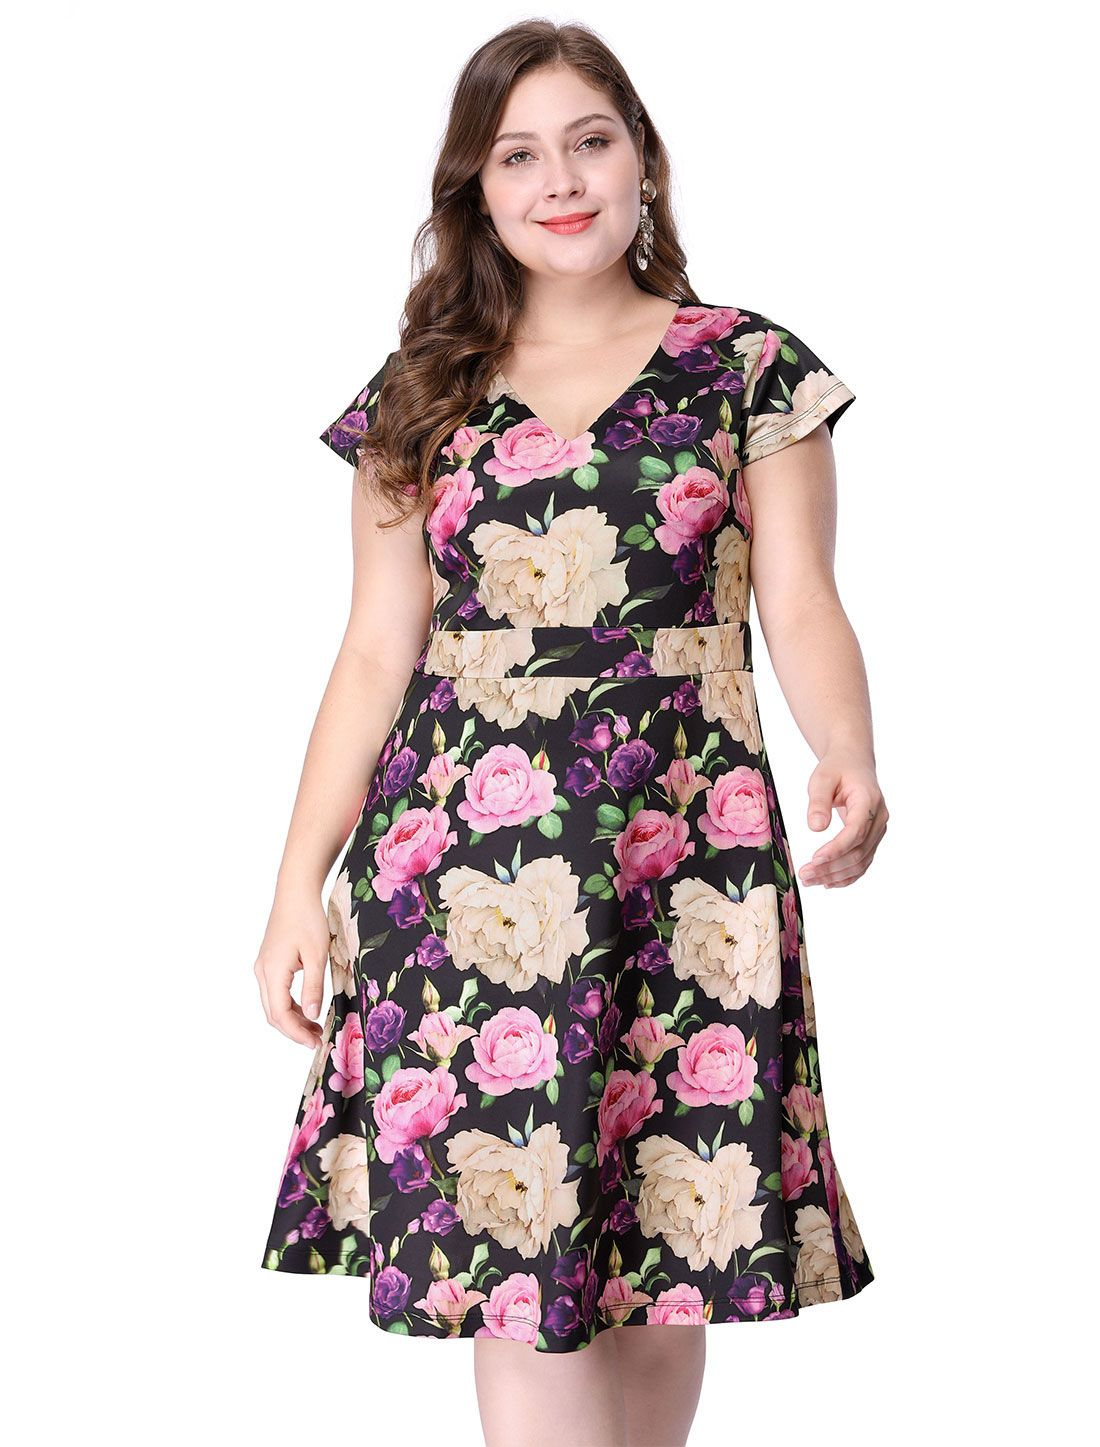 Women\'s Plus Size Above Knee Cap Sleeve V Neck Floral Dress - Dress